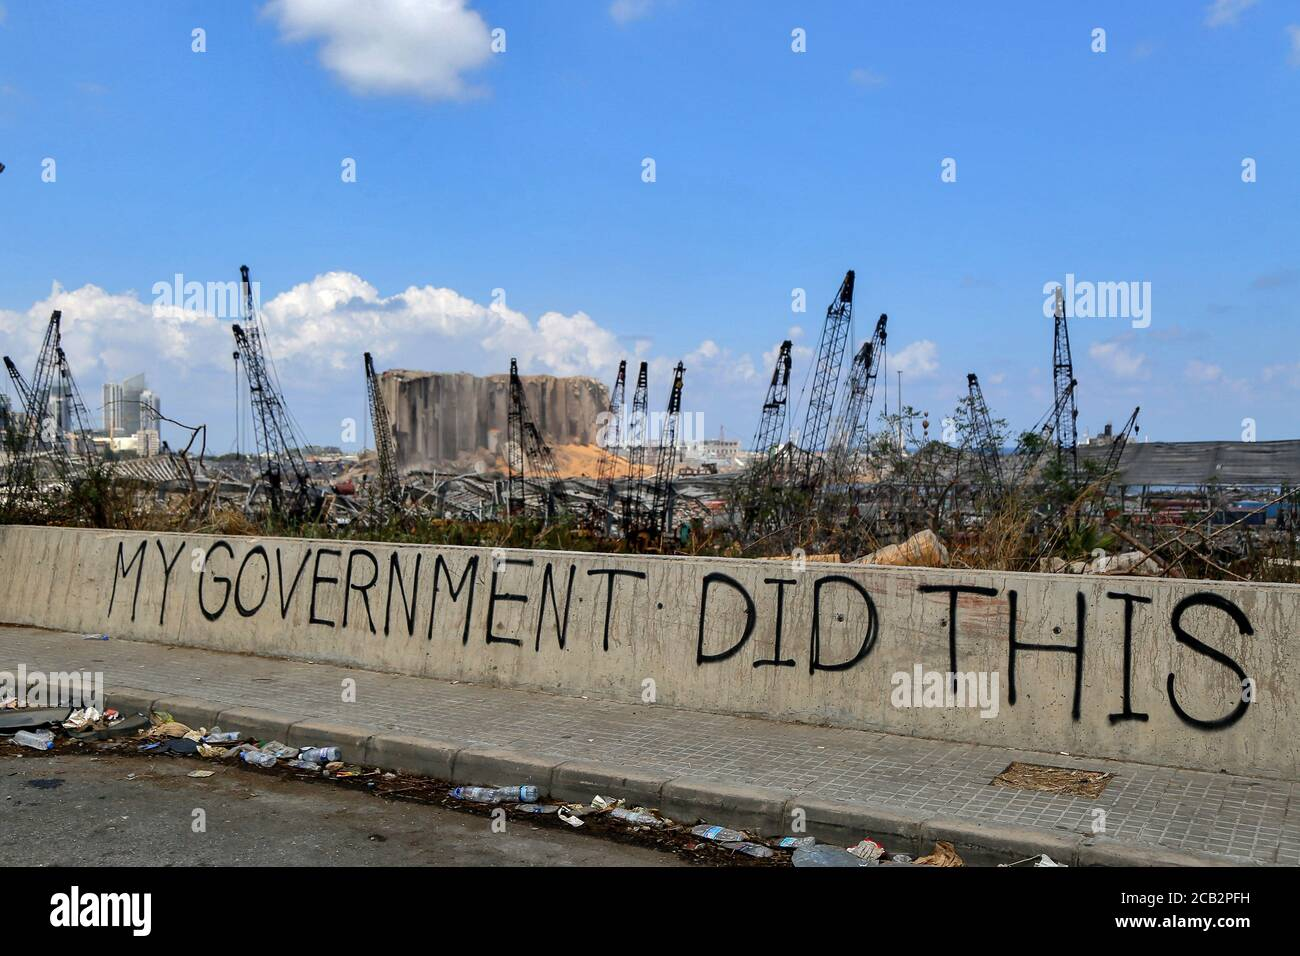 """Beirut, Lebanon. 10th Aug, 2020. """"My government did this"""" is seeen written on a wall at the site of the massive Beirut port explosion of 04 August which killed at least 158 people, wounded 6000 and displaced some 250,000 to 300,000. Credit: Marwan Naamani/dpa/Alamy Live News Stock Photo"""